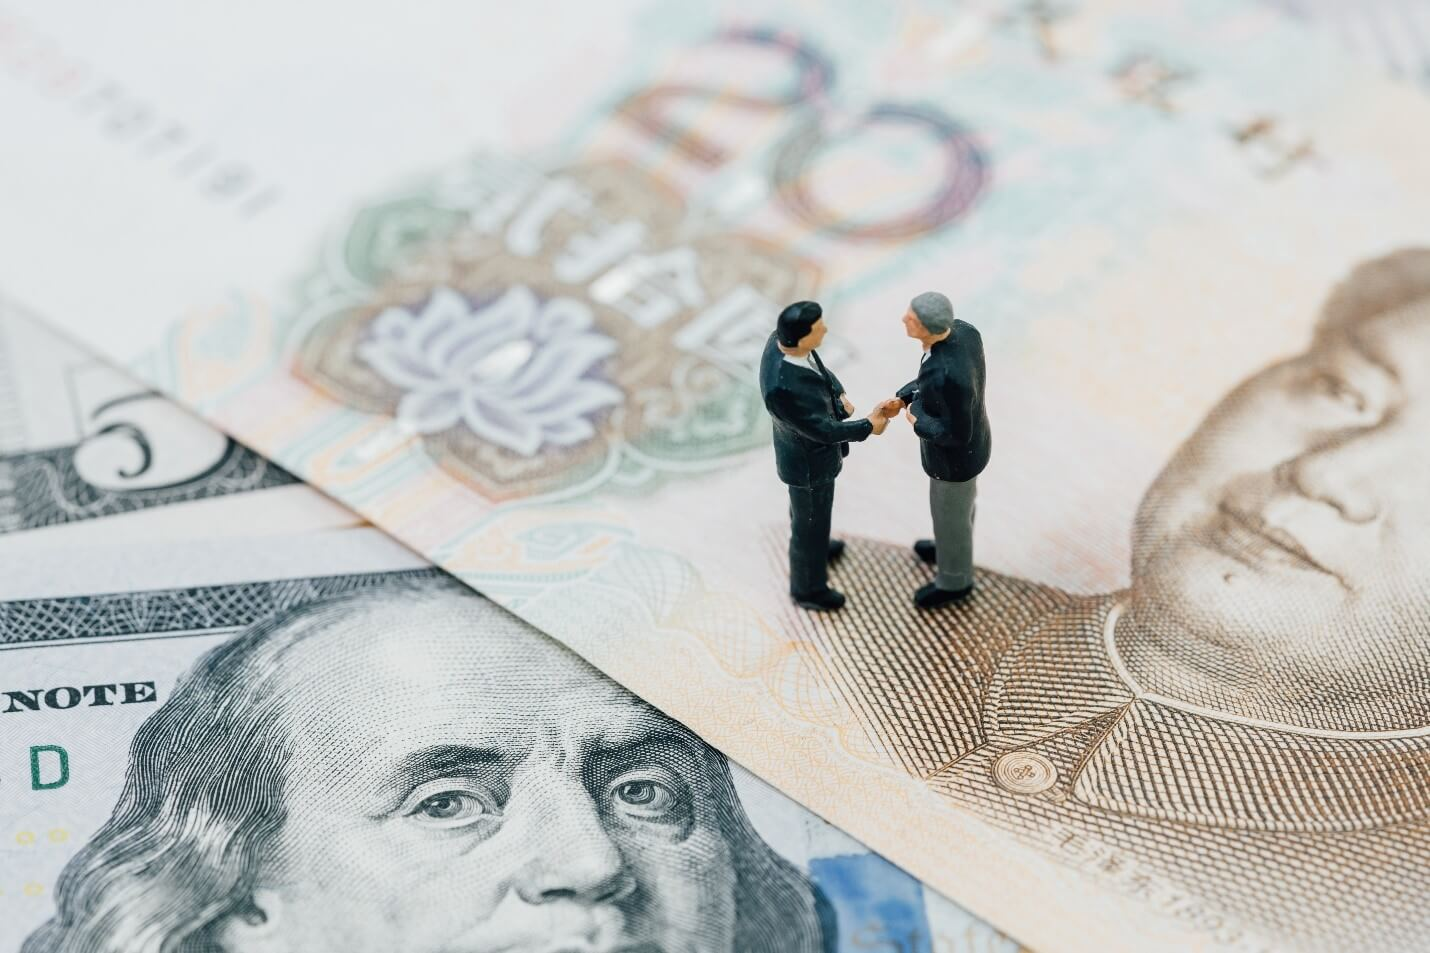 Two small figurines shaking hands over a yuan and dollar bill